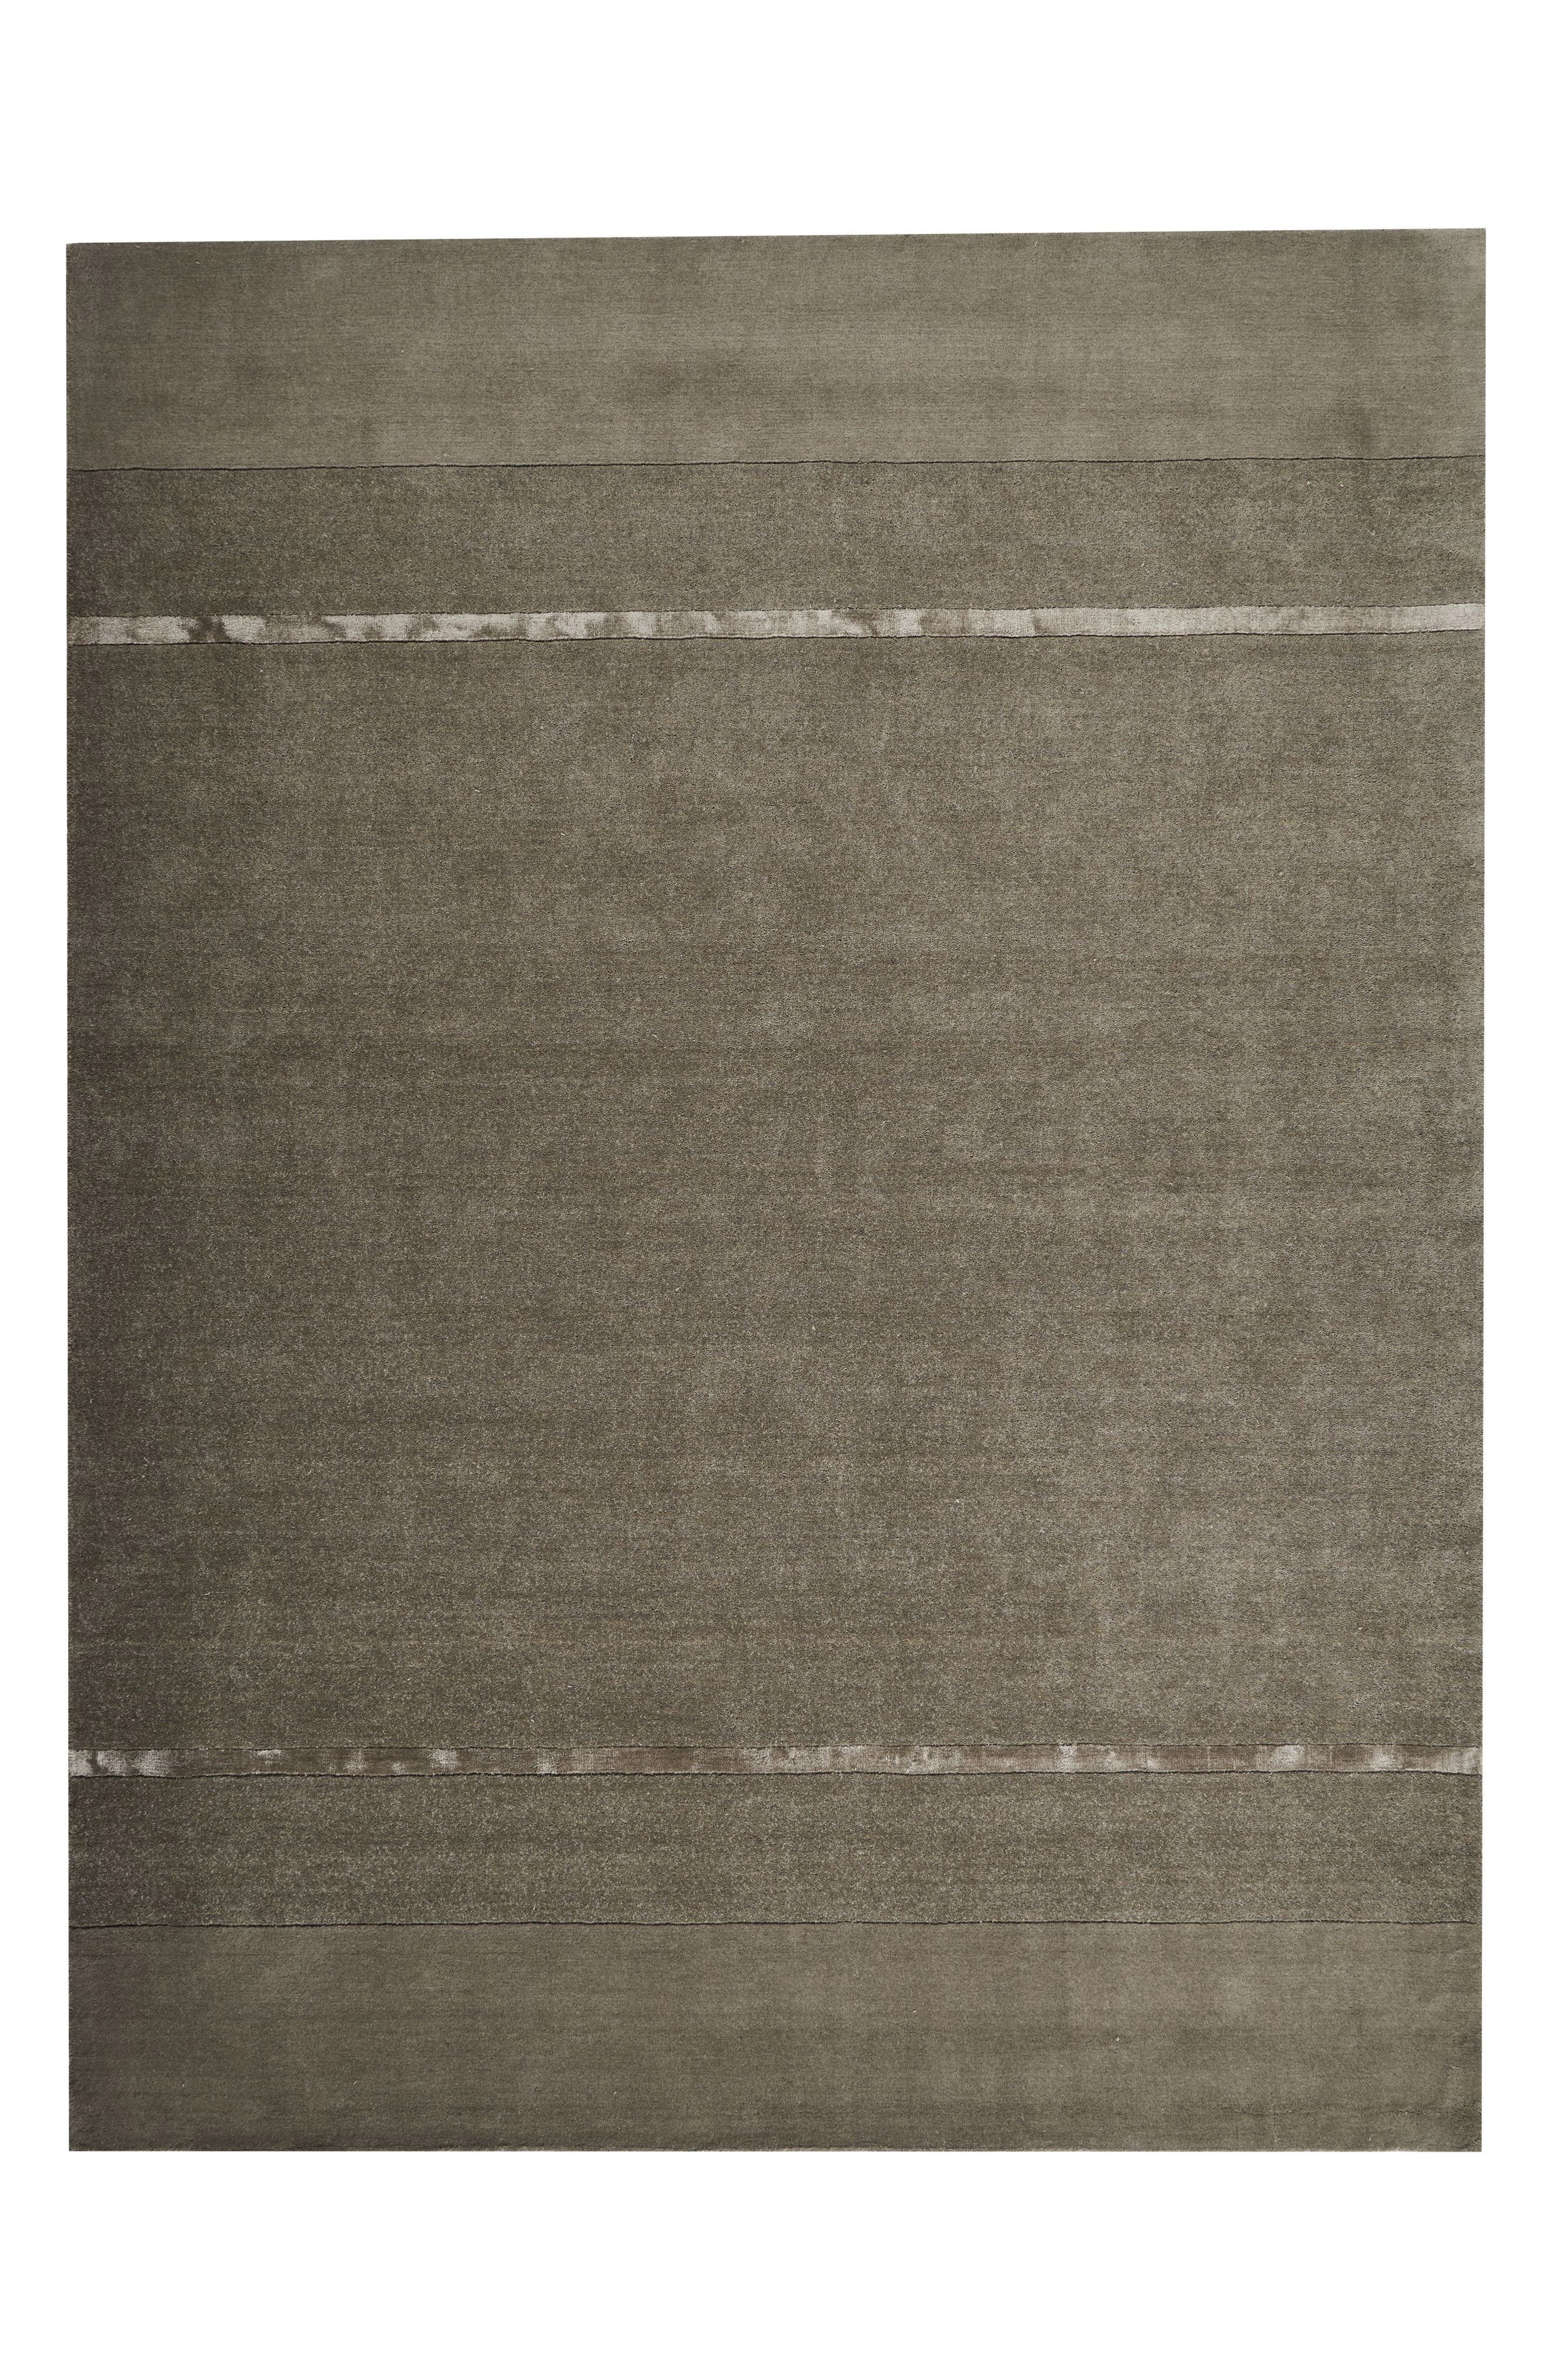 Vale Handwoven Area Rug,                         Main,                         color, 020